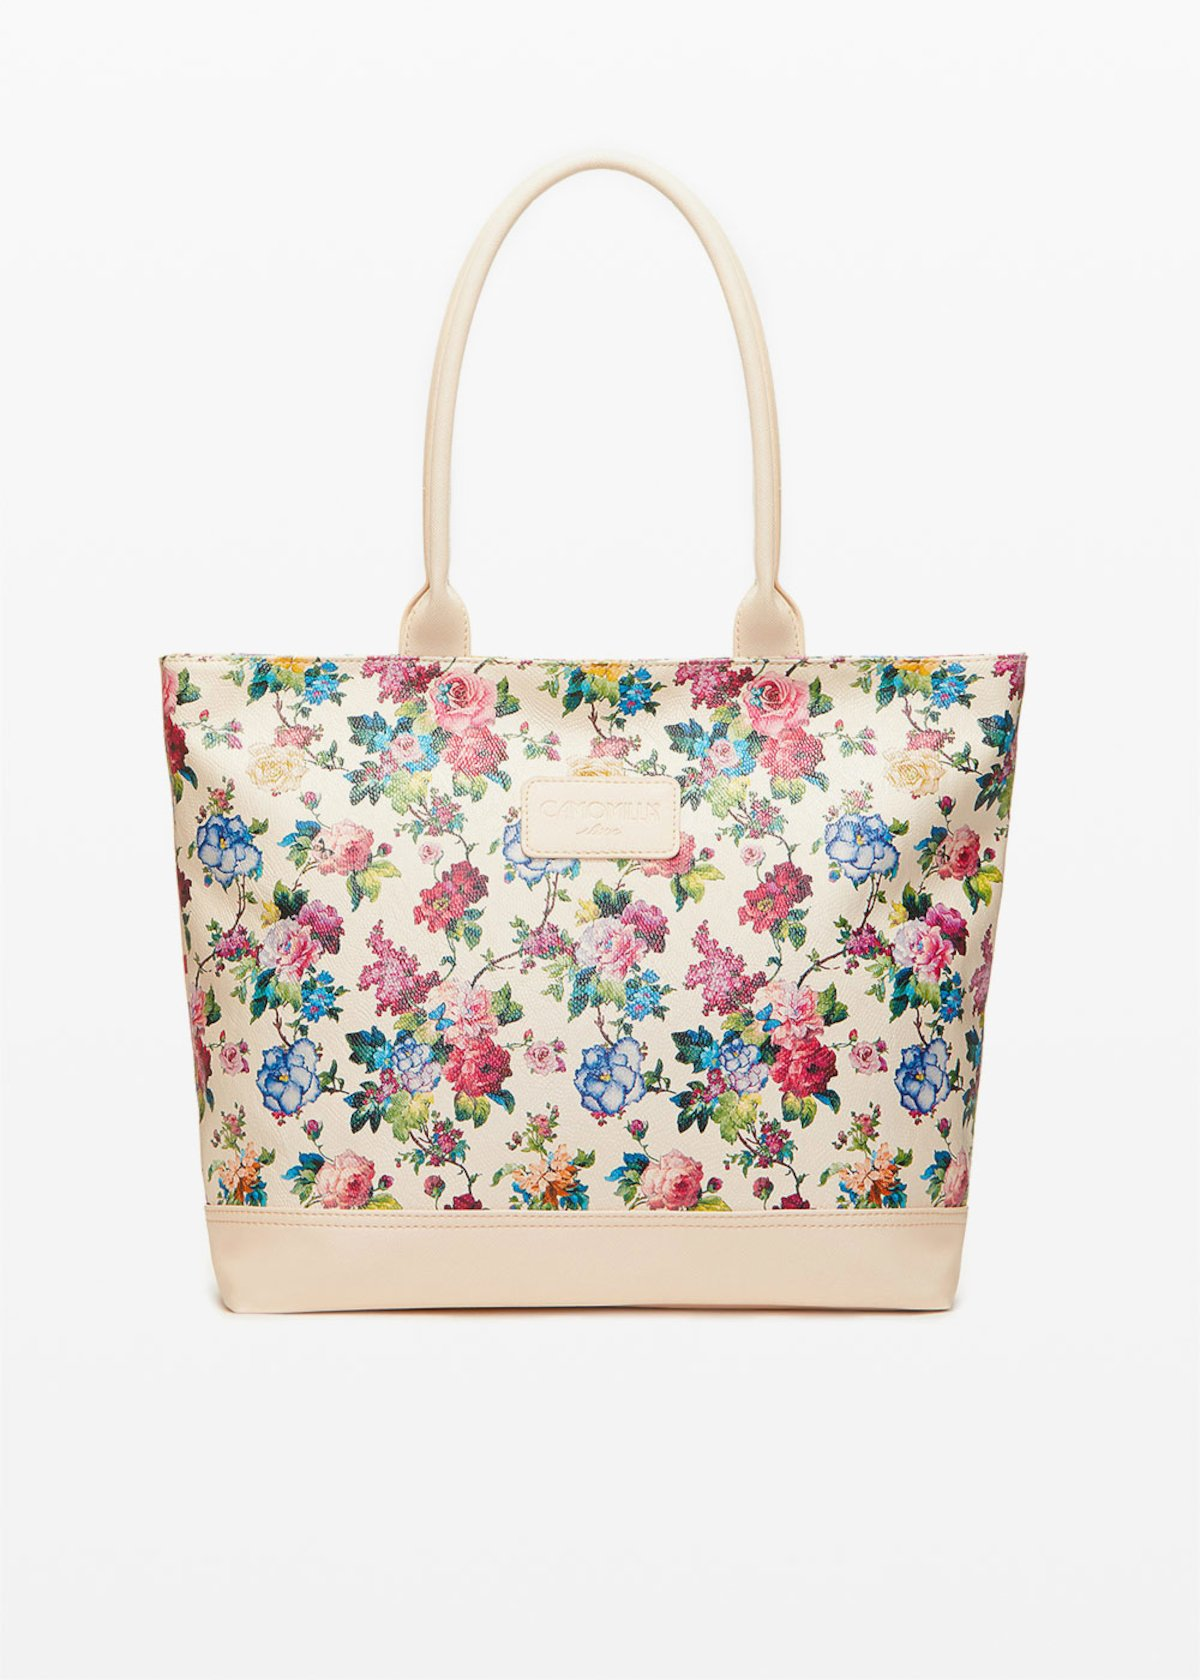 Trendflo3 Shopping bag - Oca Fantasia - Woman - Category image